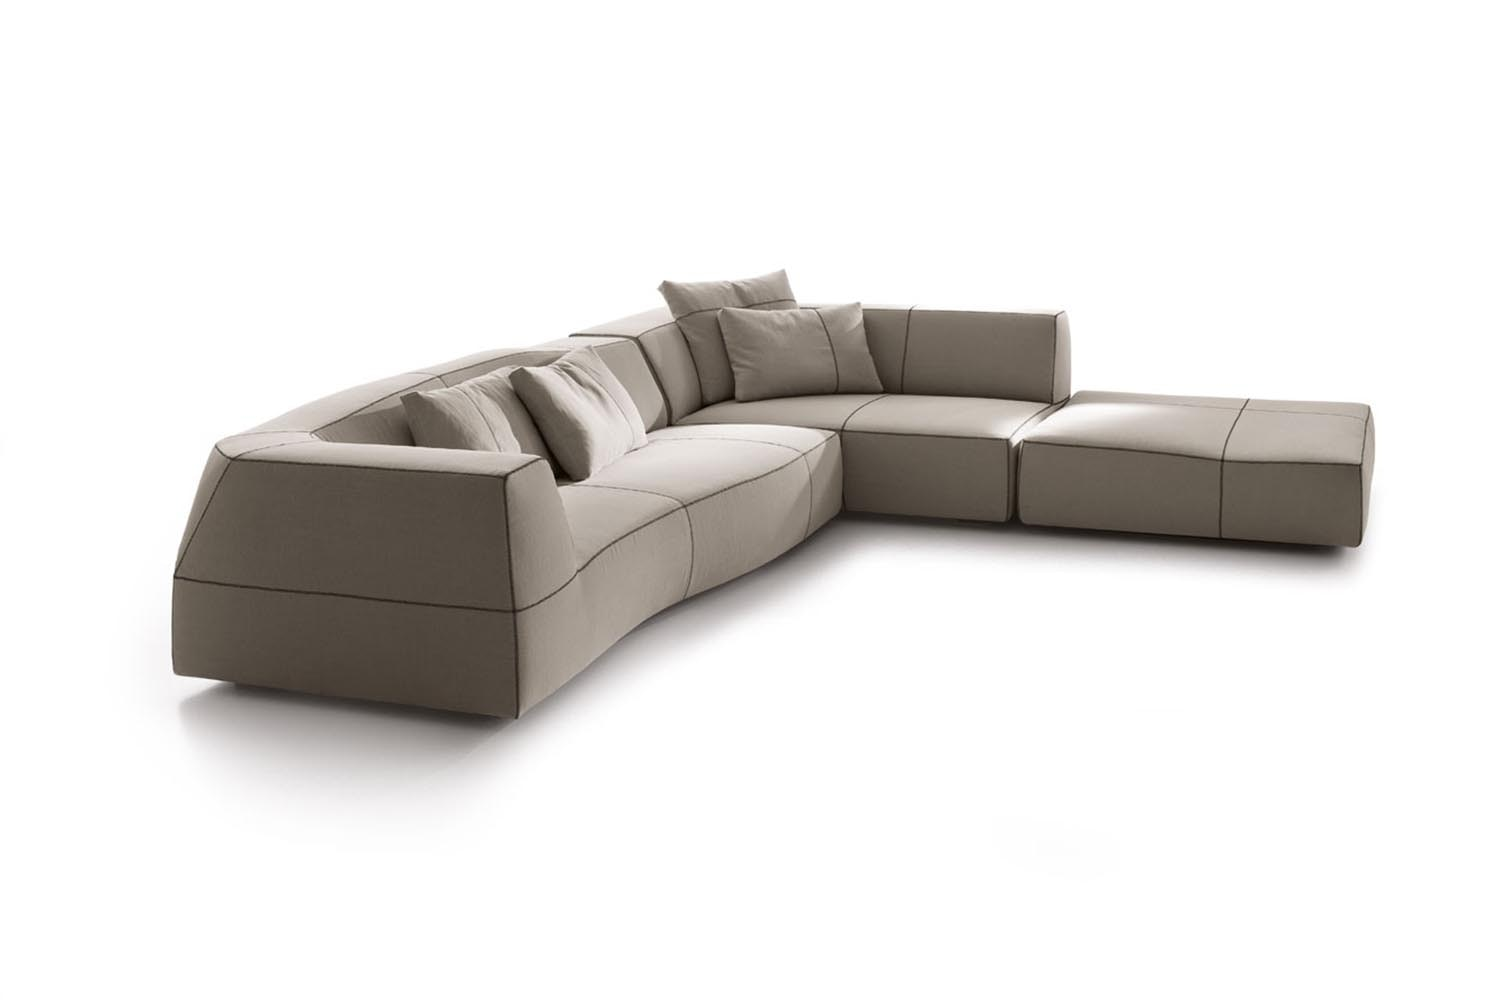 Bend Sofa By Patricia Urquiola For B B Italia Space Furniture